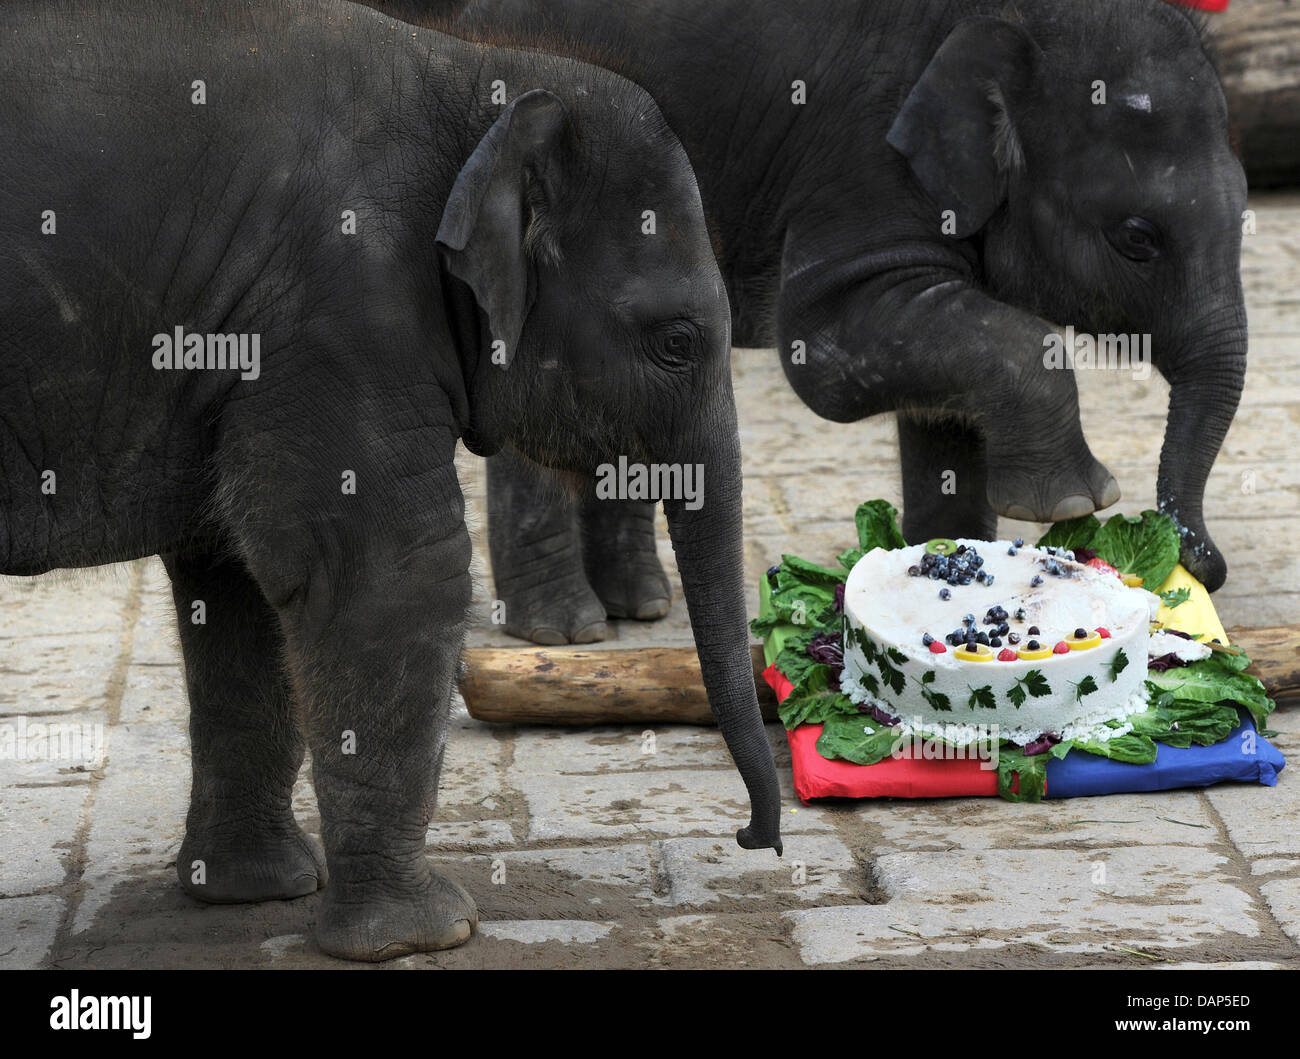 Baby elephant Felix L watches his brother Dinkar R eat some cake